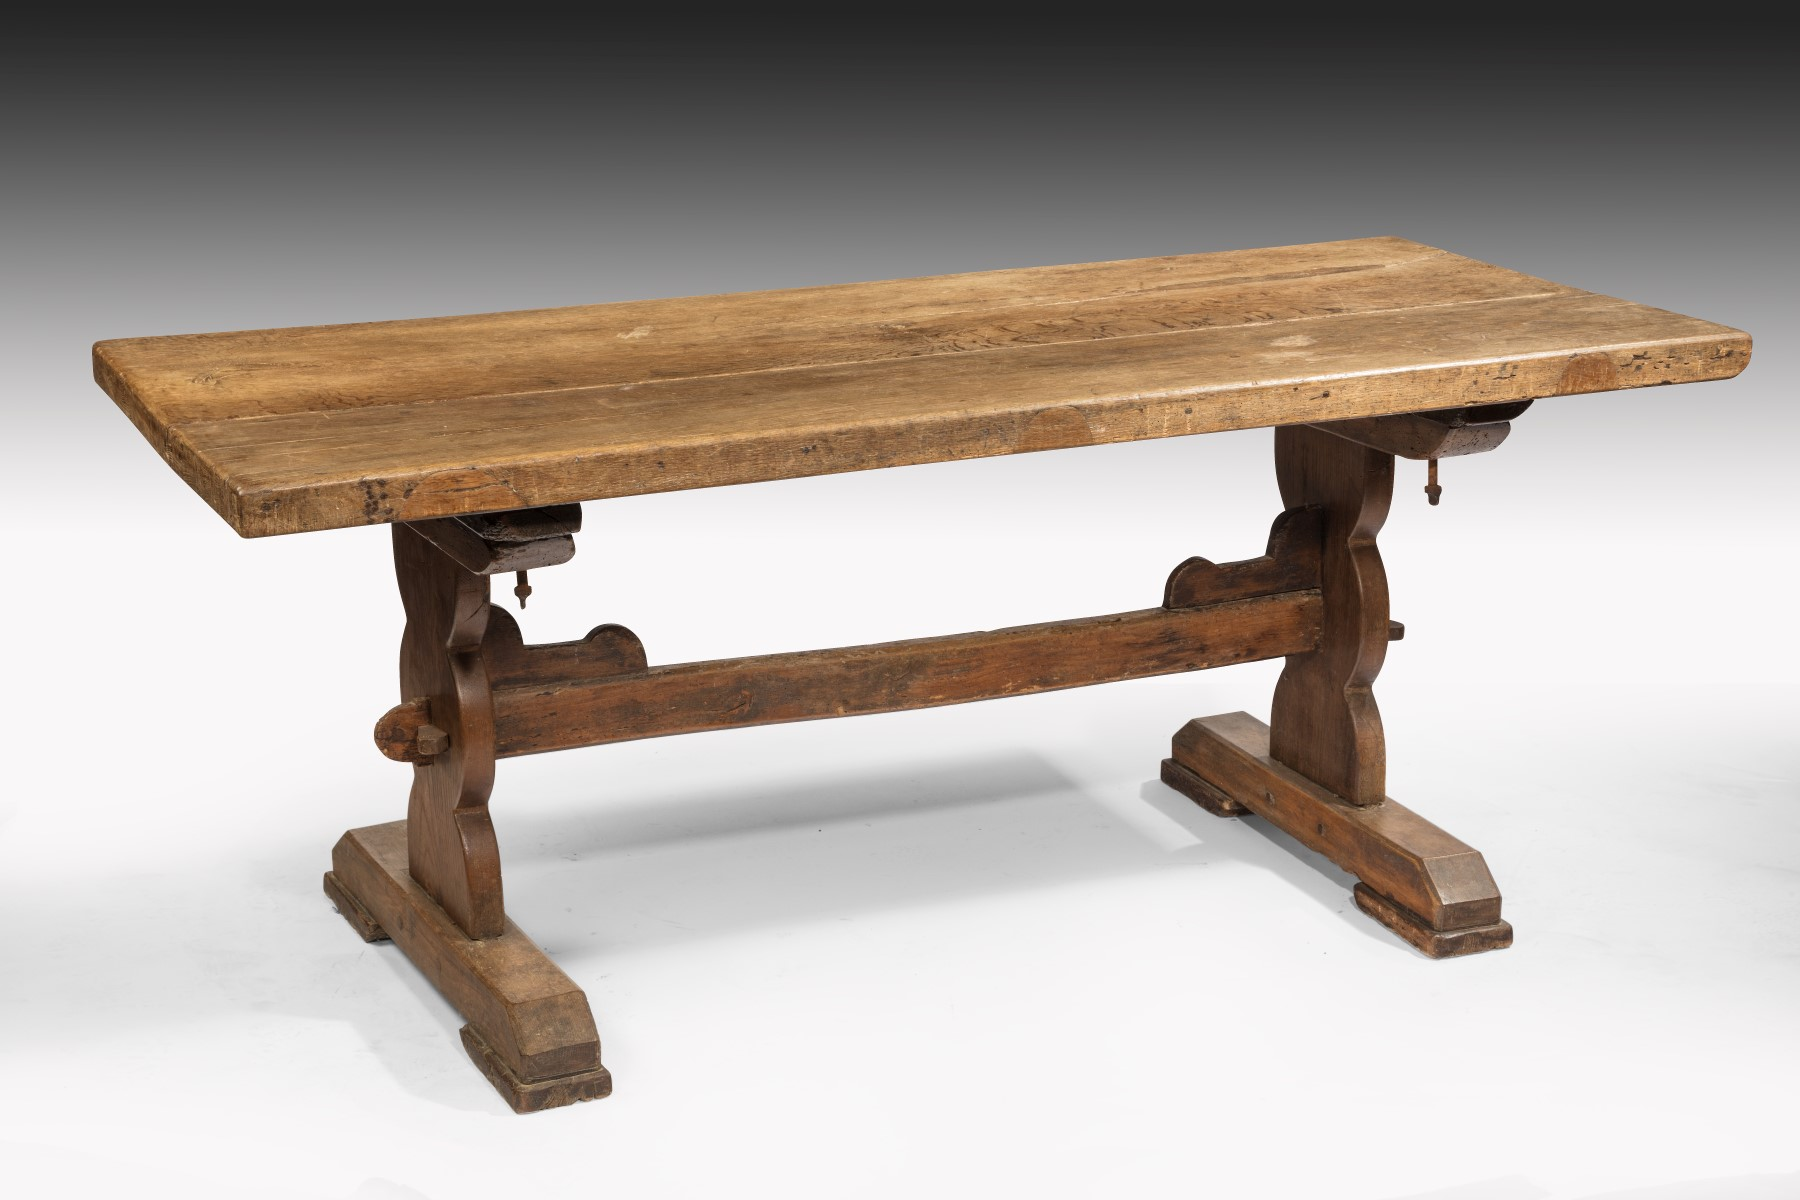 ... 17th Century Oak Refectory Table Image 2